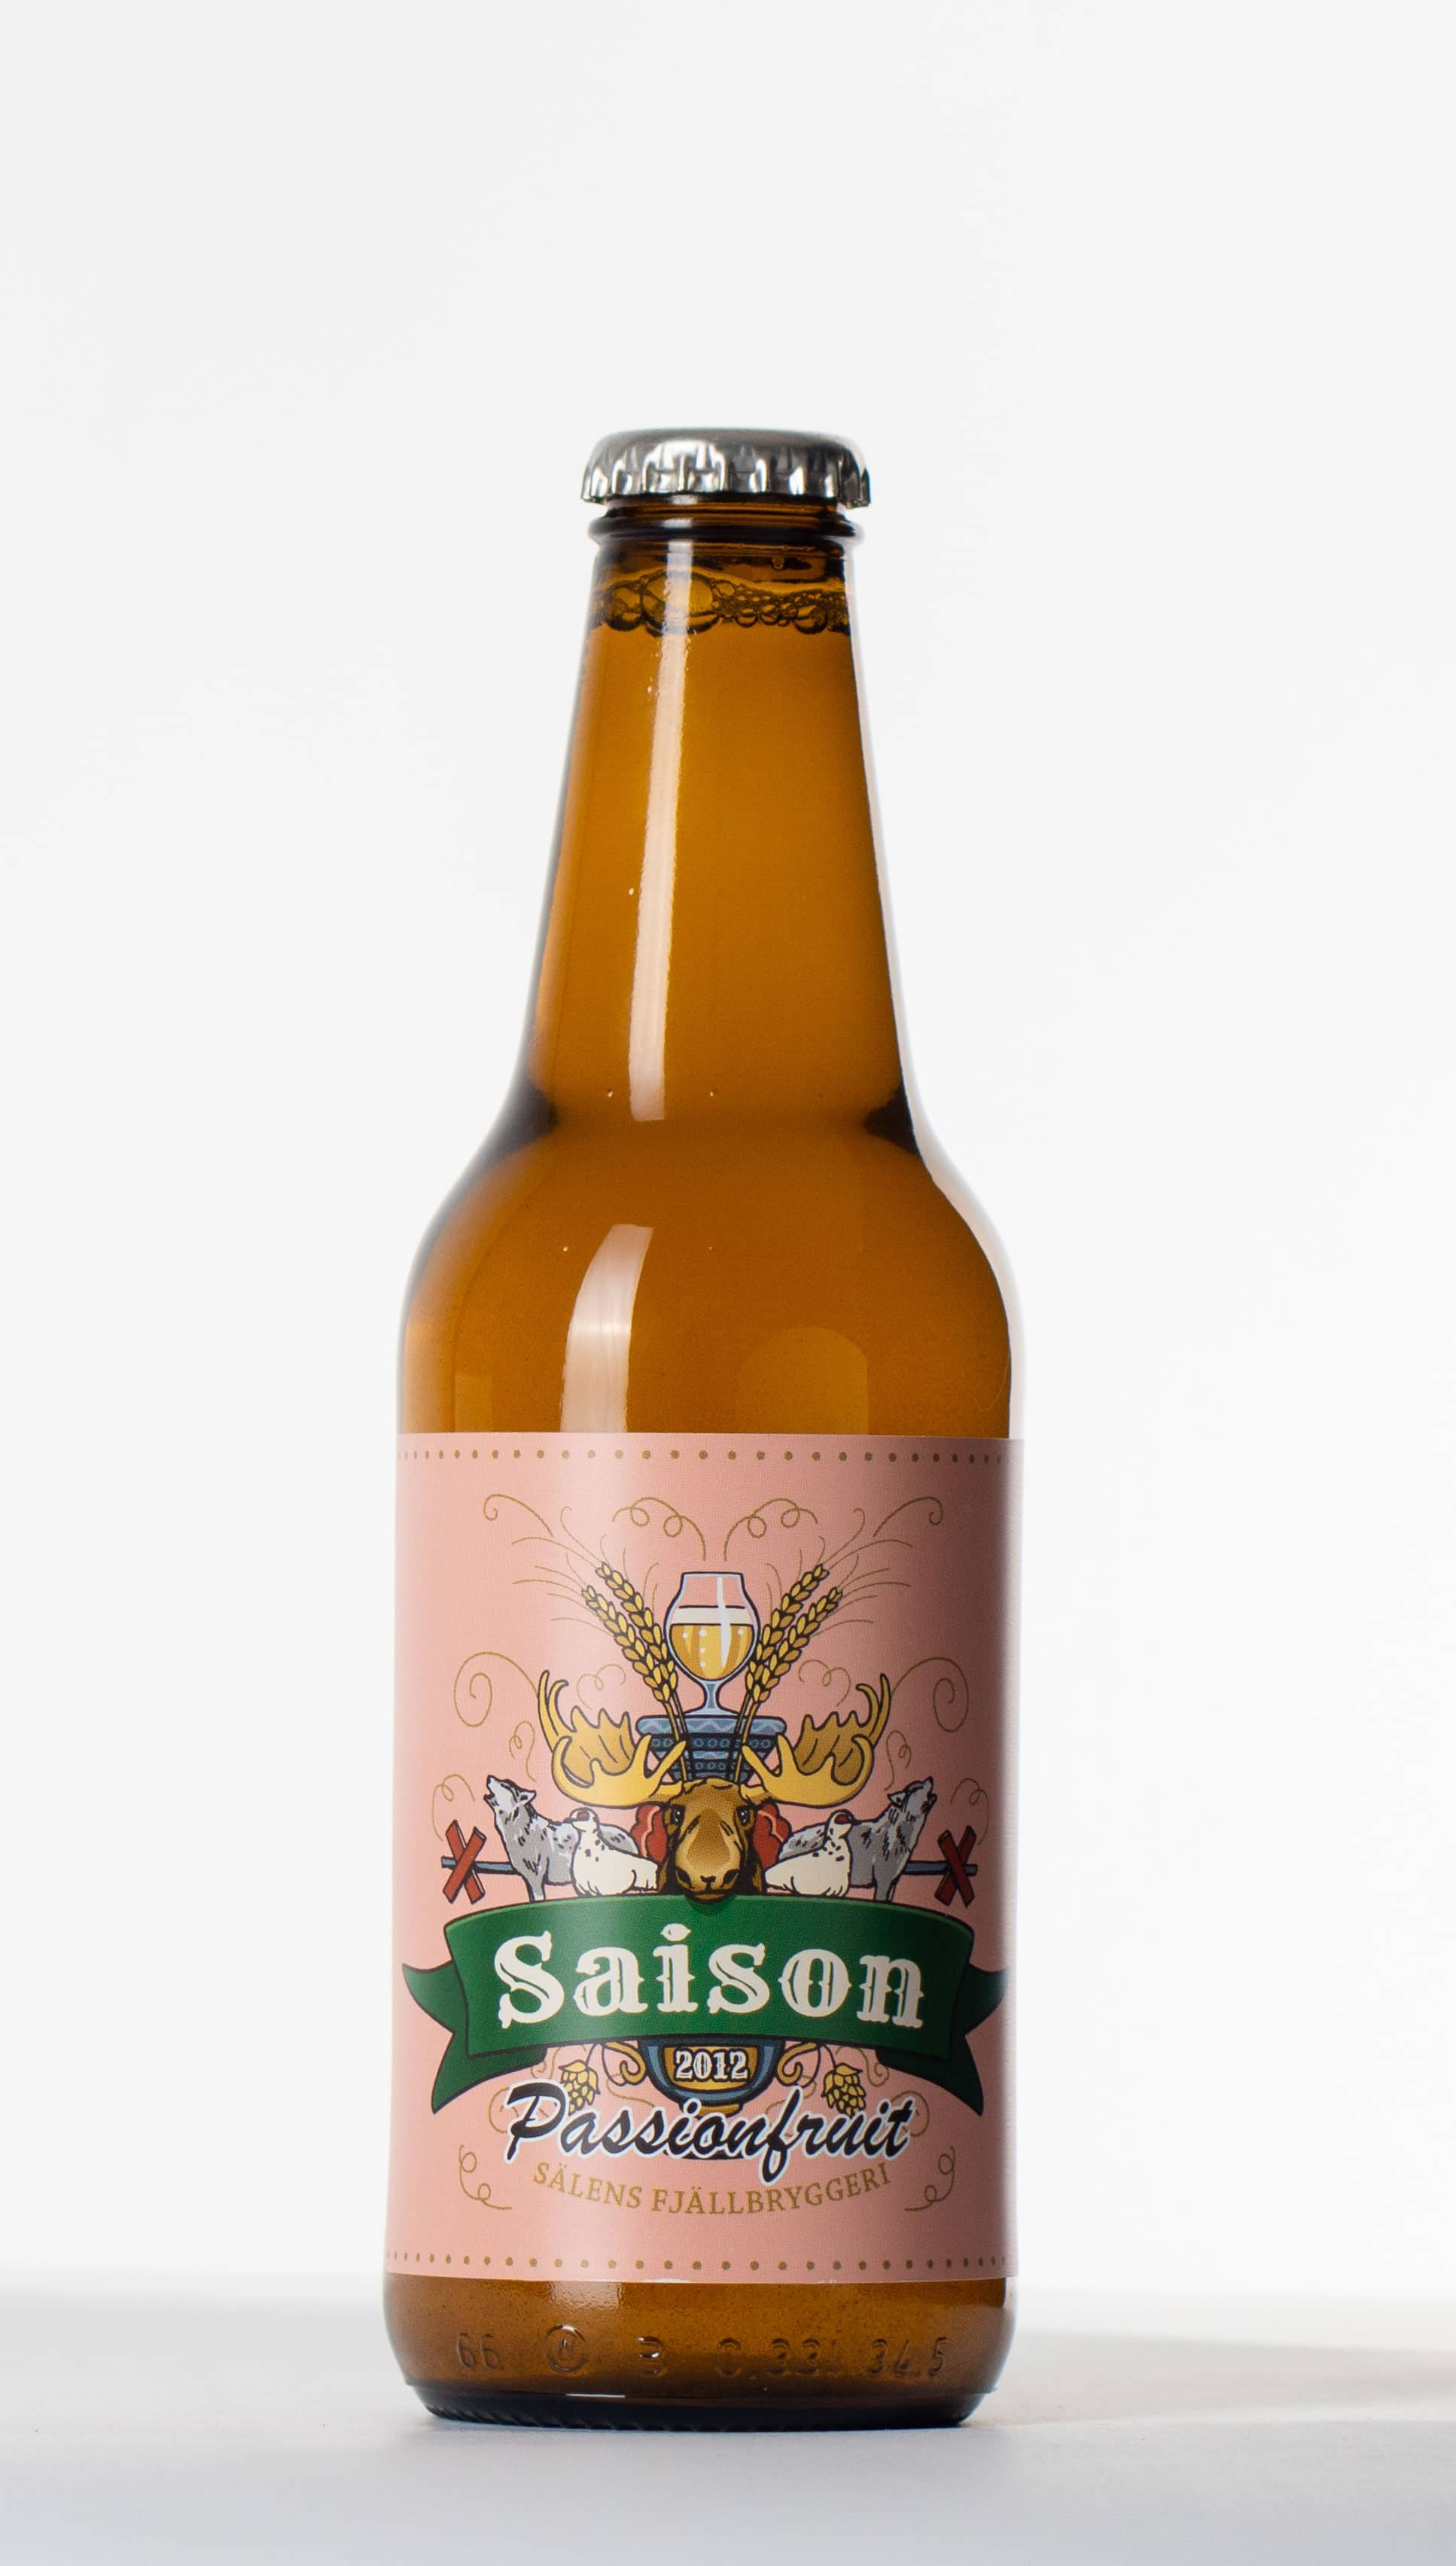 saison passionfrukt flaska, beer bottle